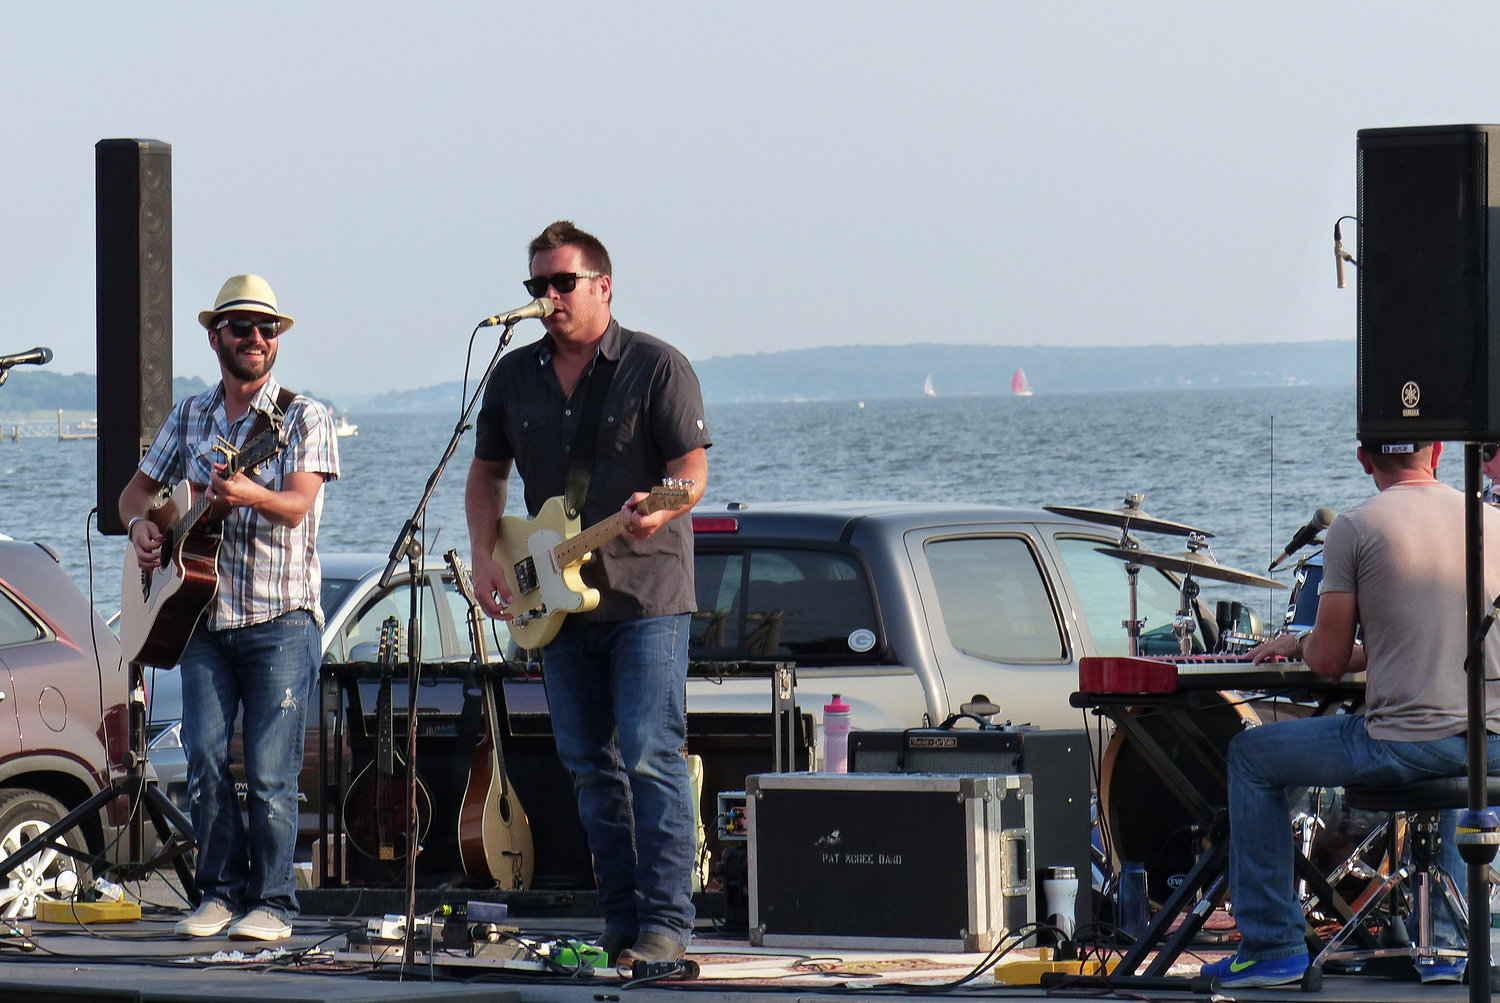 Early evening concerts 